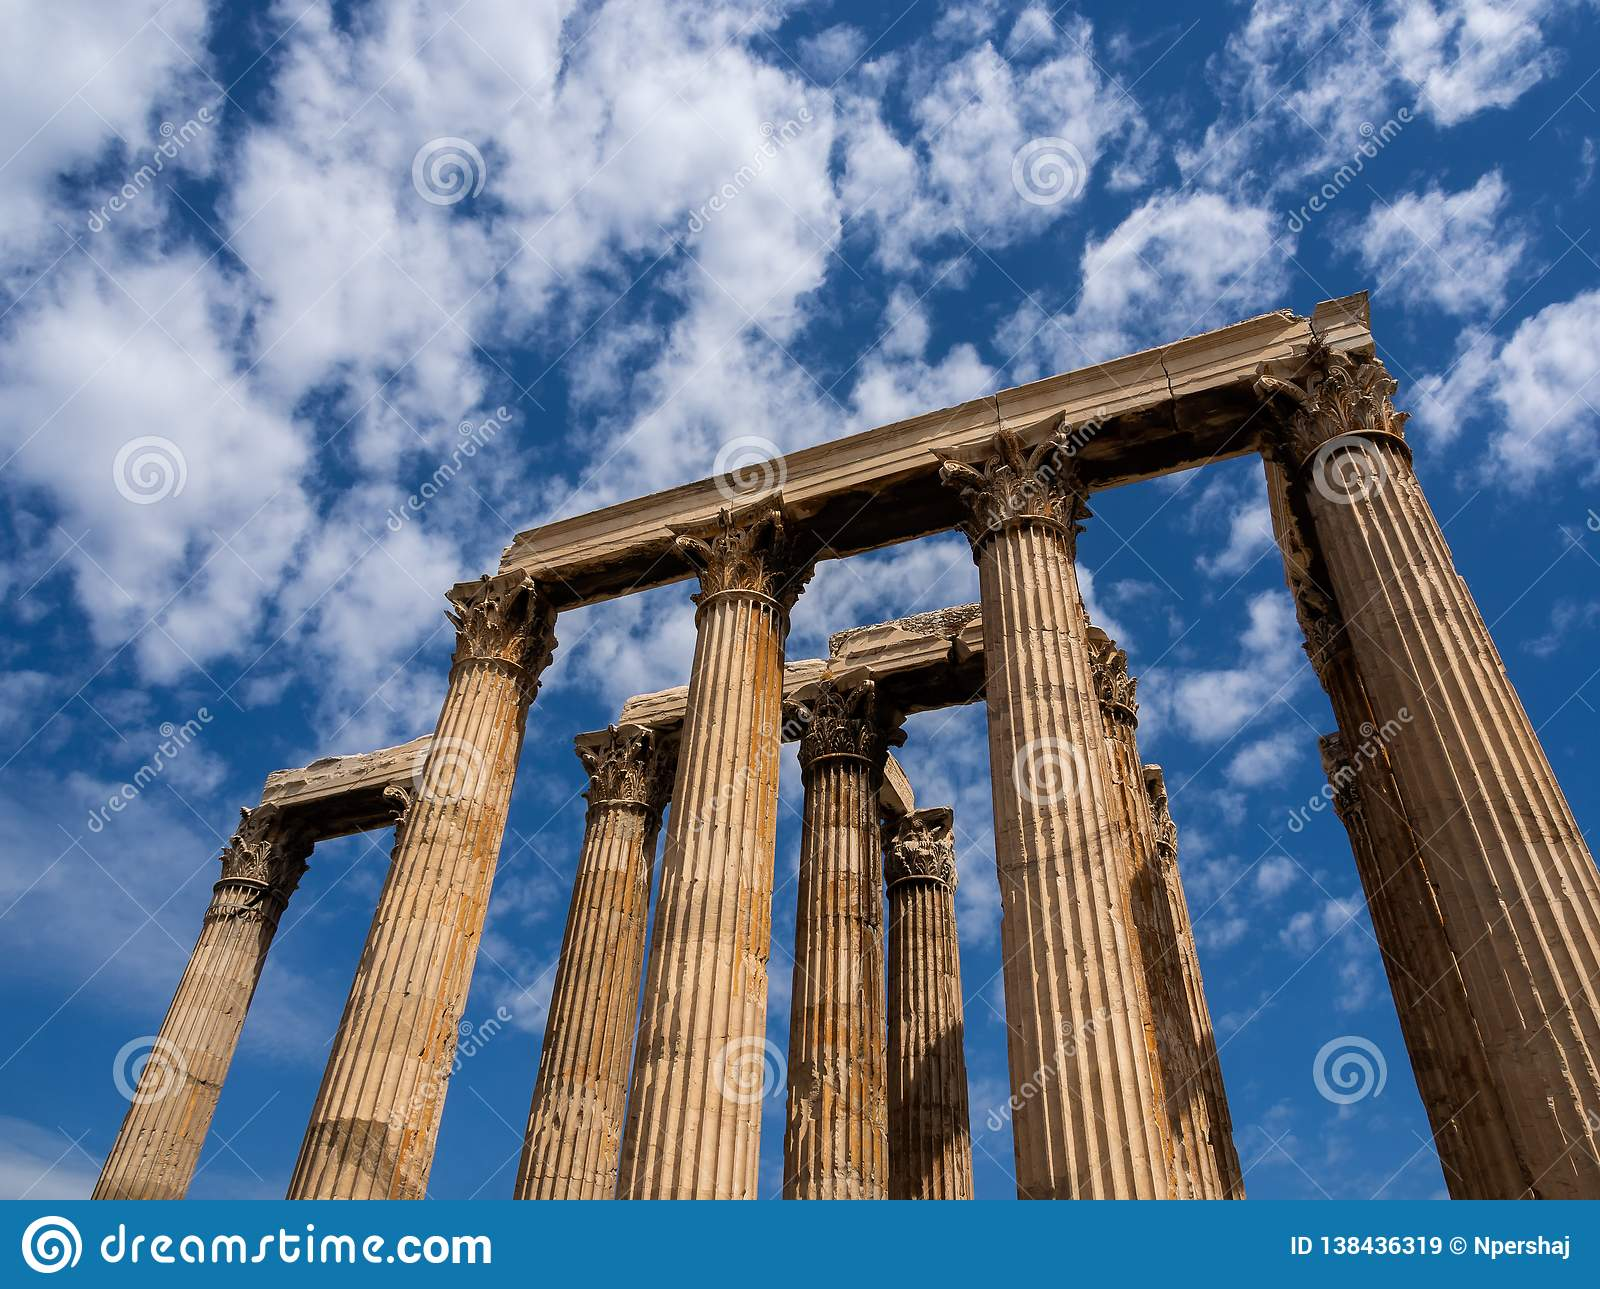 Remaining columns of Temple of Olympian Zeus in Athens, Greece shot against blue sky and picturesque clouds